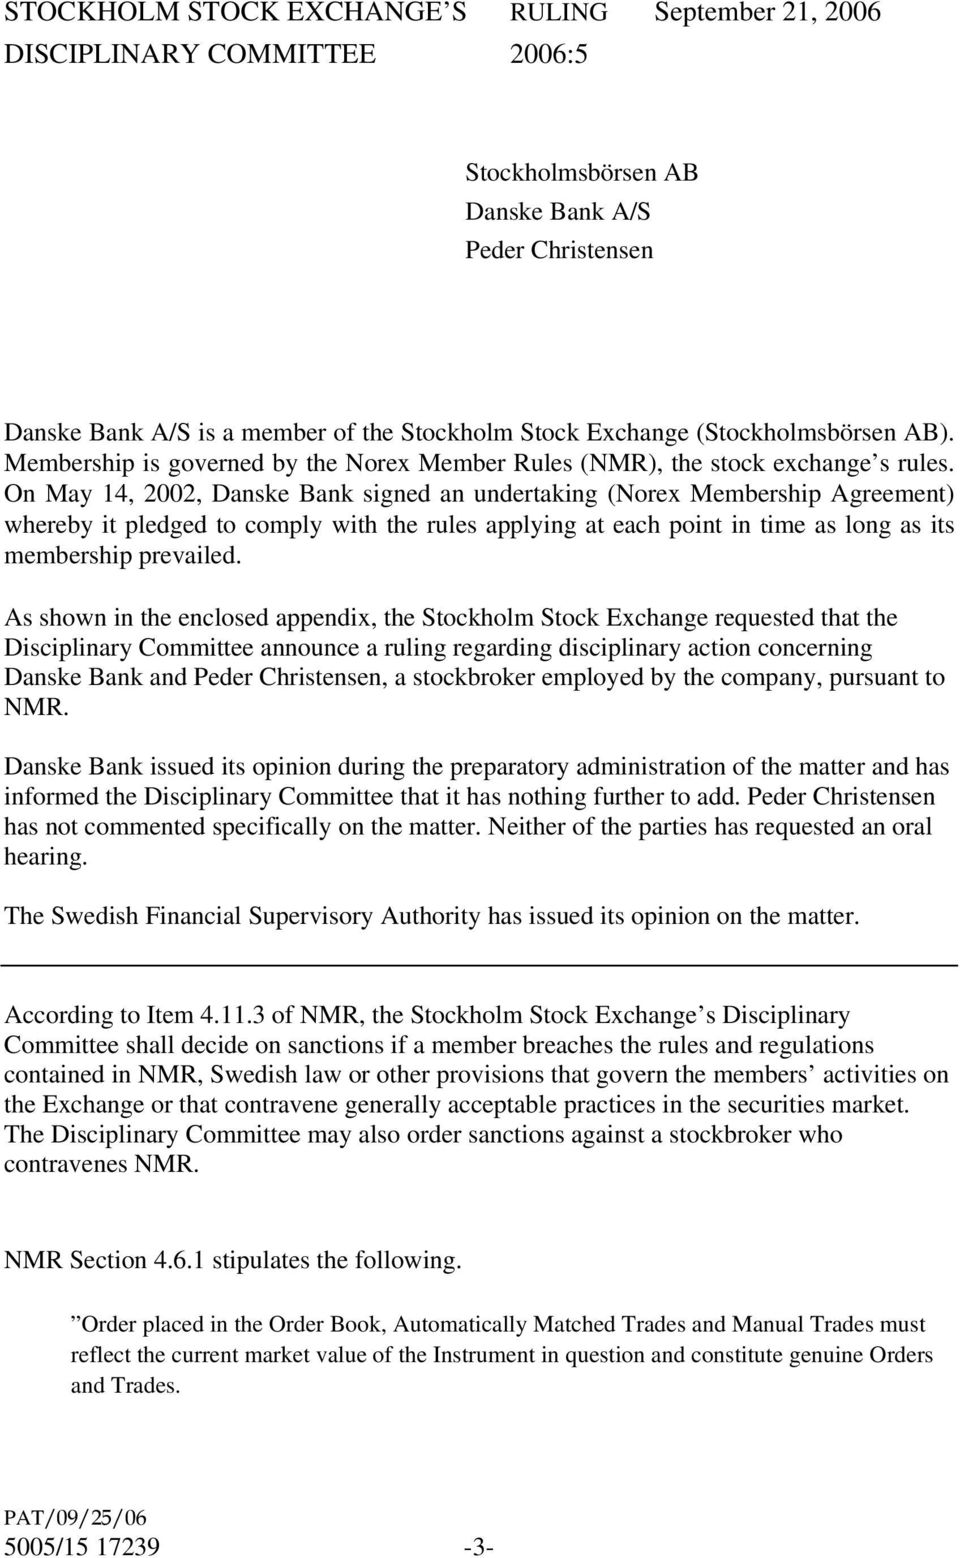 On May 14, 2002, Danske Bank signed an undertaking (Norex Membership Agreement) whereby it pledged to comply with the rules applying at each point in time as long as its membership prevailed.